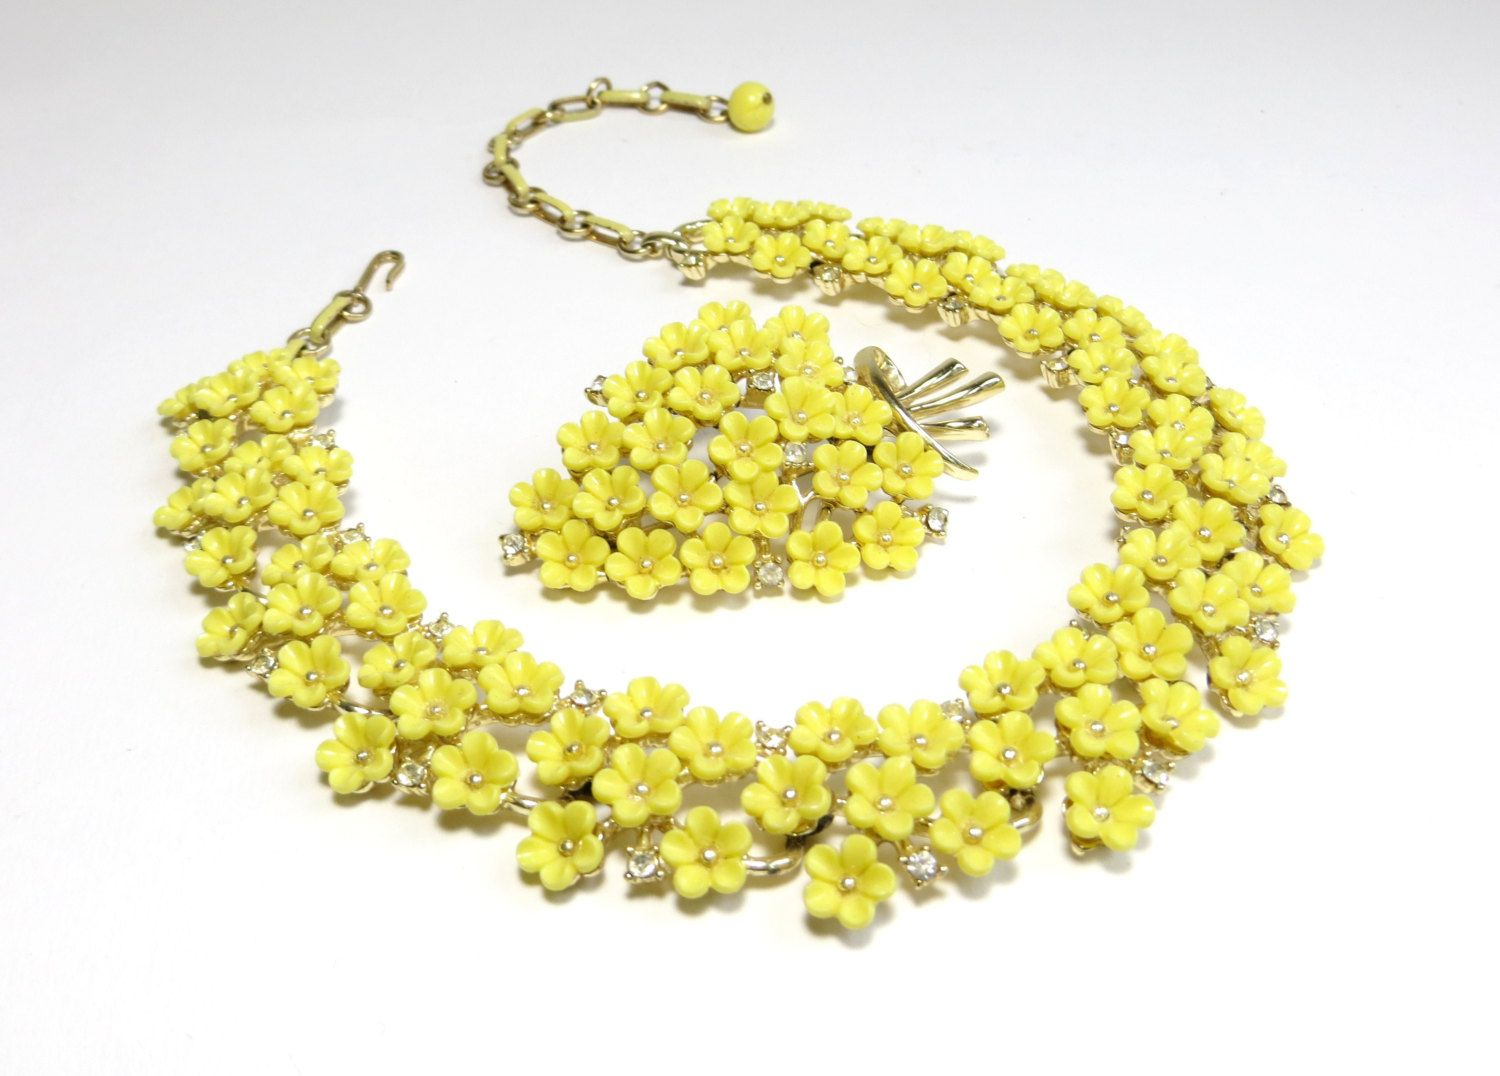 Vintage Coro Yellow Flower Necklace and Brooch with Rhinestones, Floral Flower Choker, Gold Tone Metal. $65.00, via Etsy.